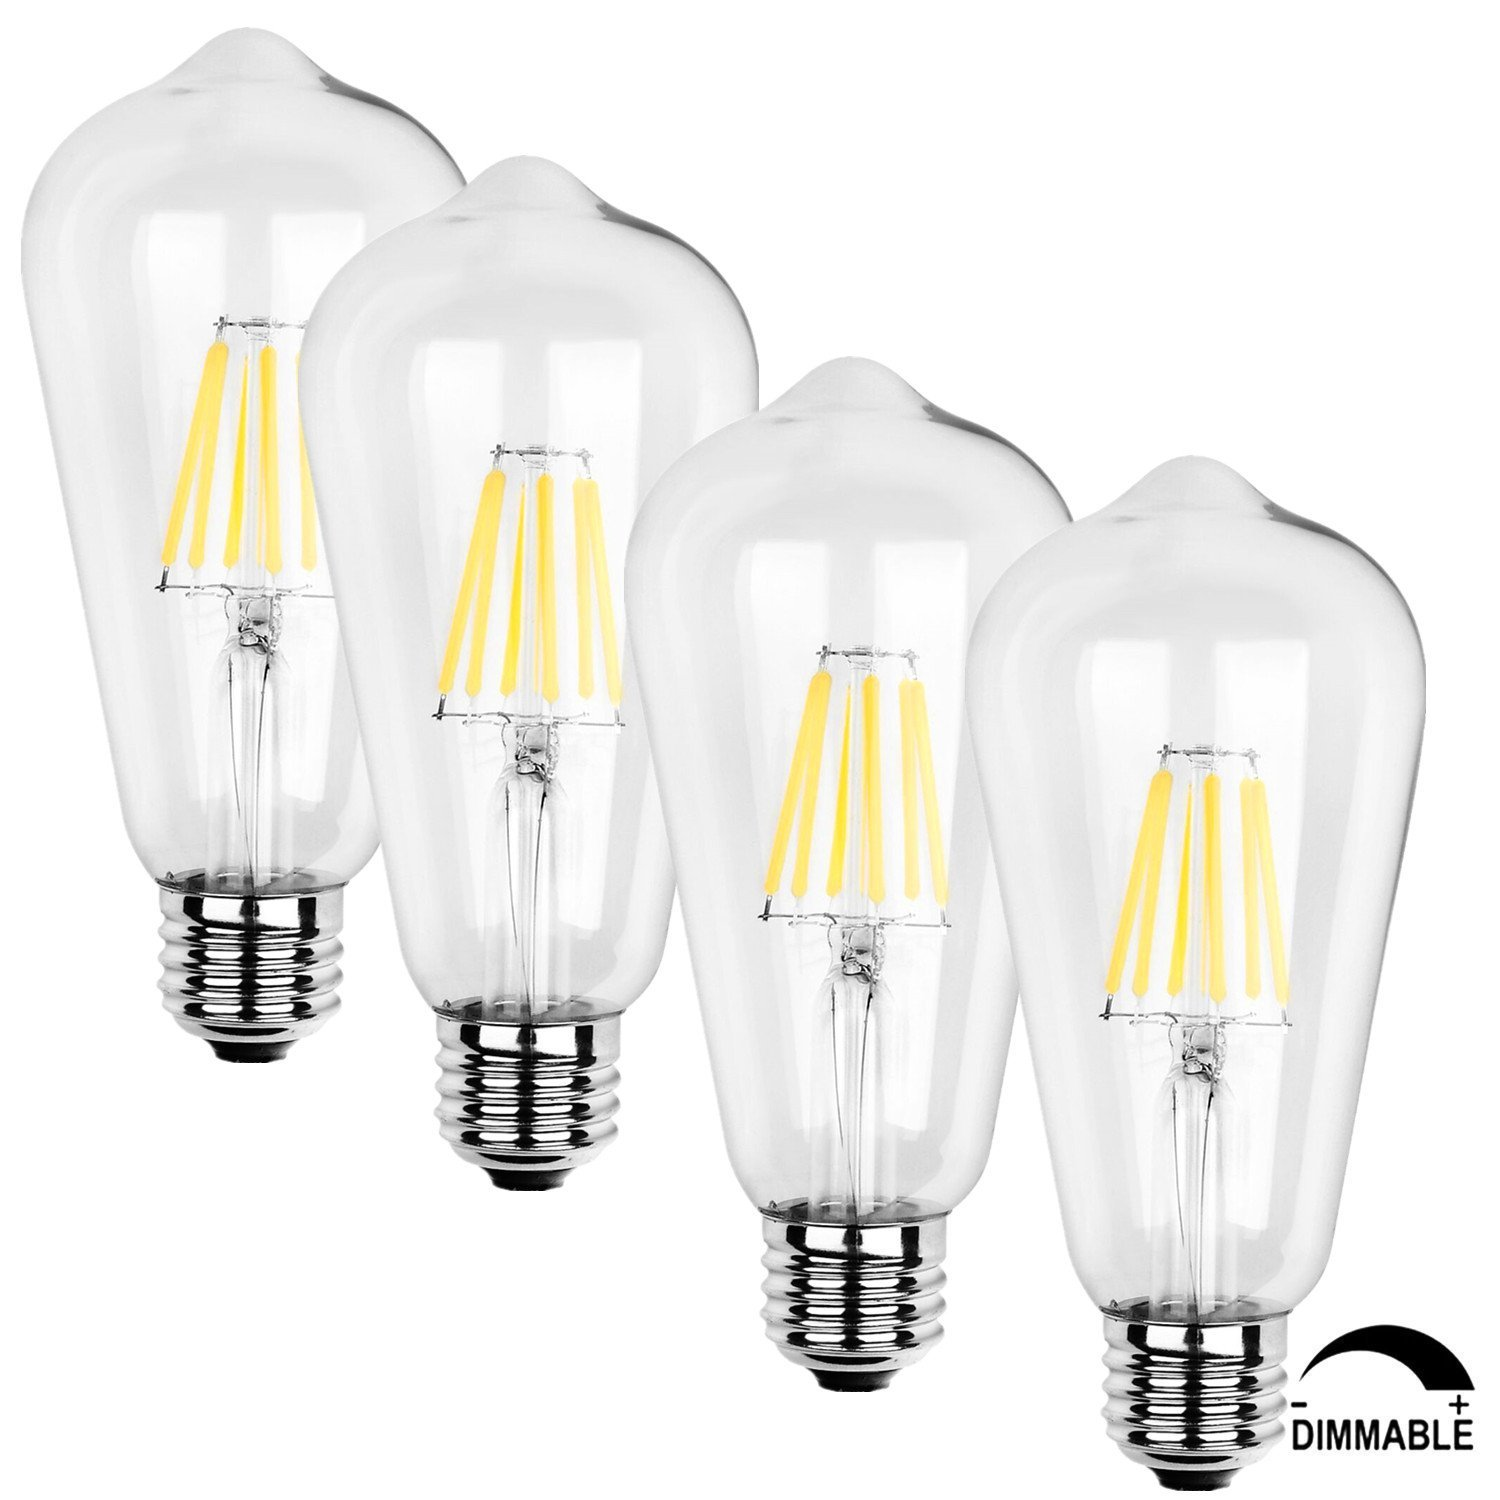 Get Quotations Soofoo E27 Led Vintage Filament Lighting Bulb Retro Edison Style 8w To Replace